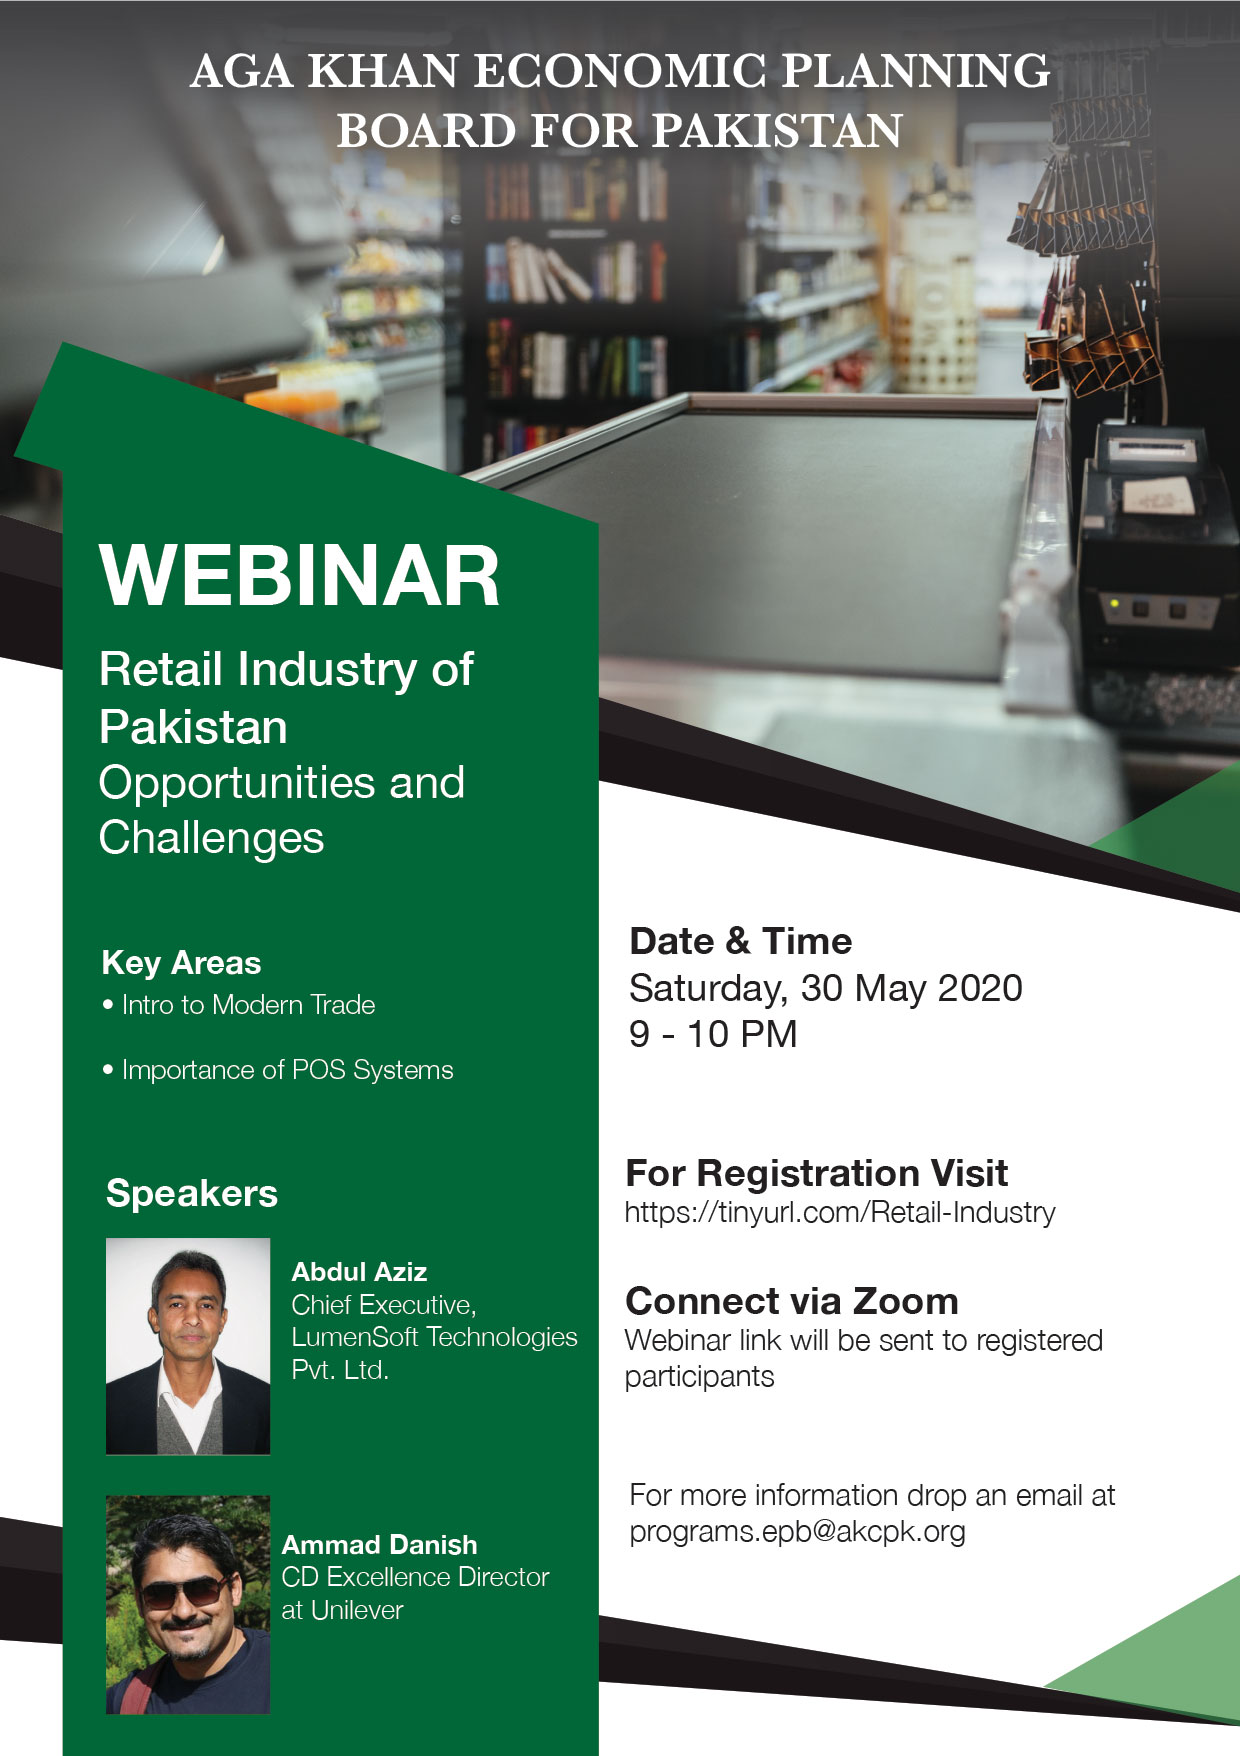 Retail Industry of Pakistan - Opportunities and Challenges